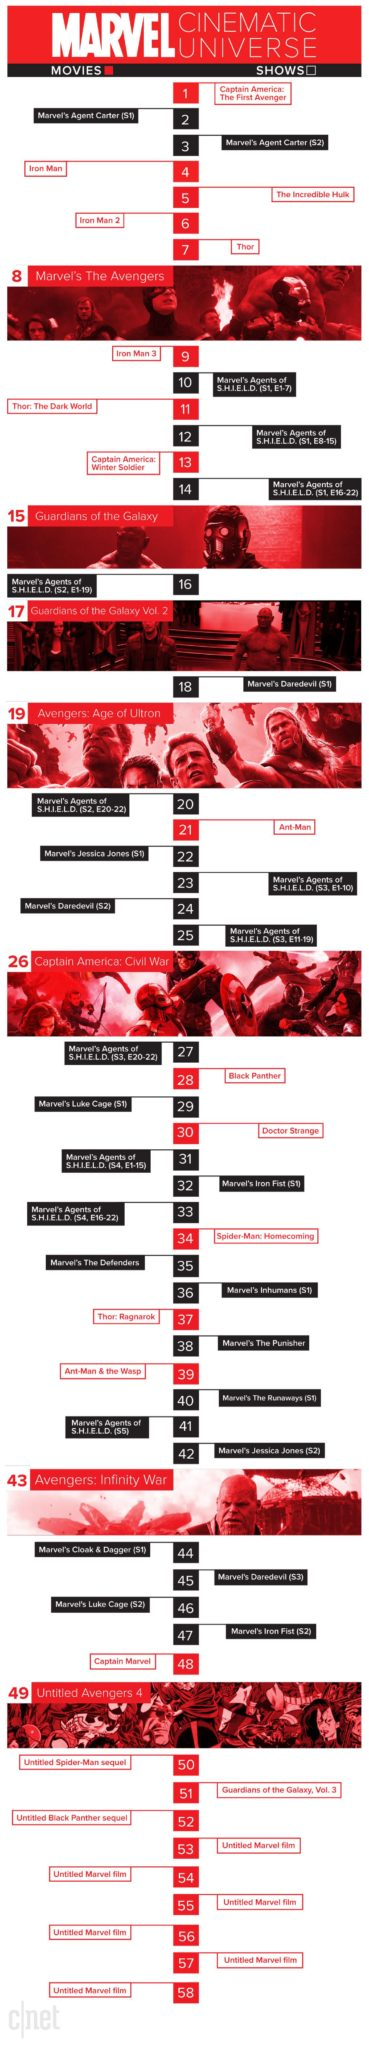 Marvel Cinematic Universe Timeline